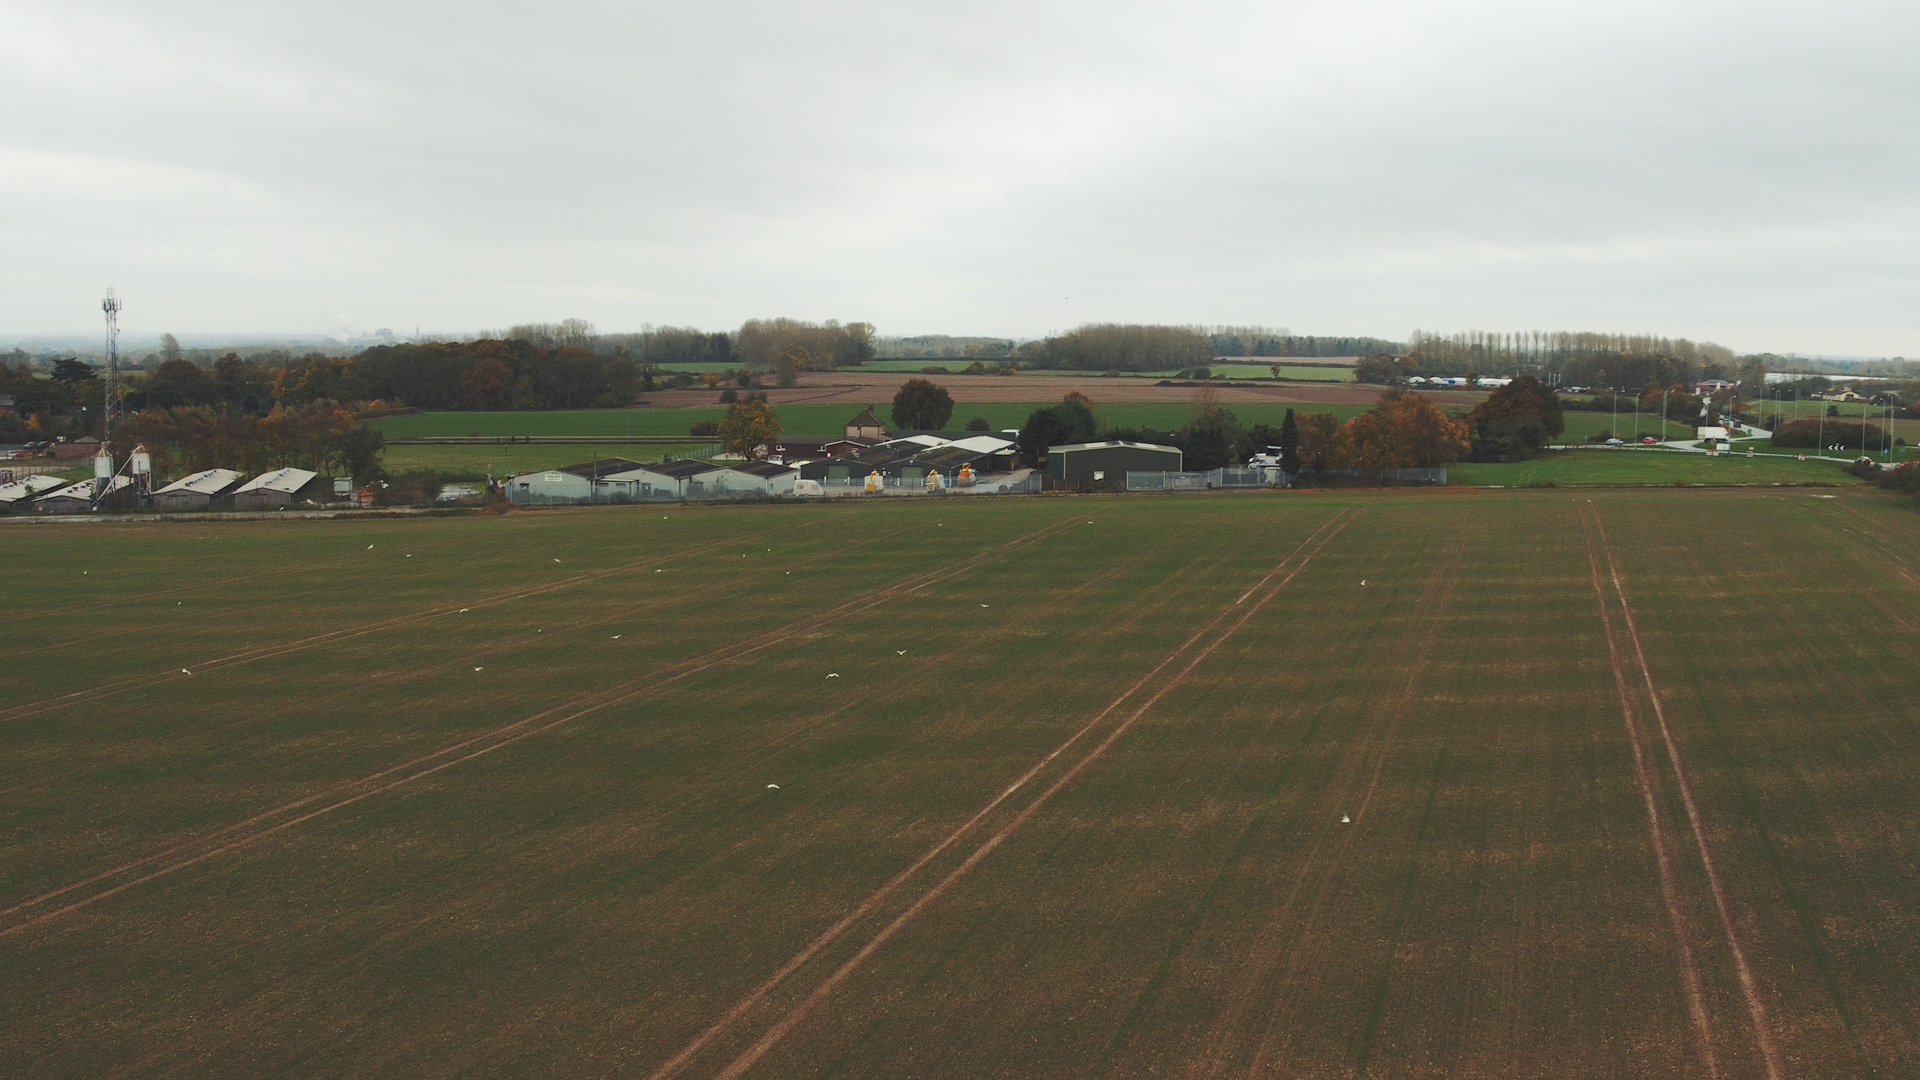 This empty field will soon be the site of the state of the art development planned by Aventa